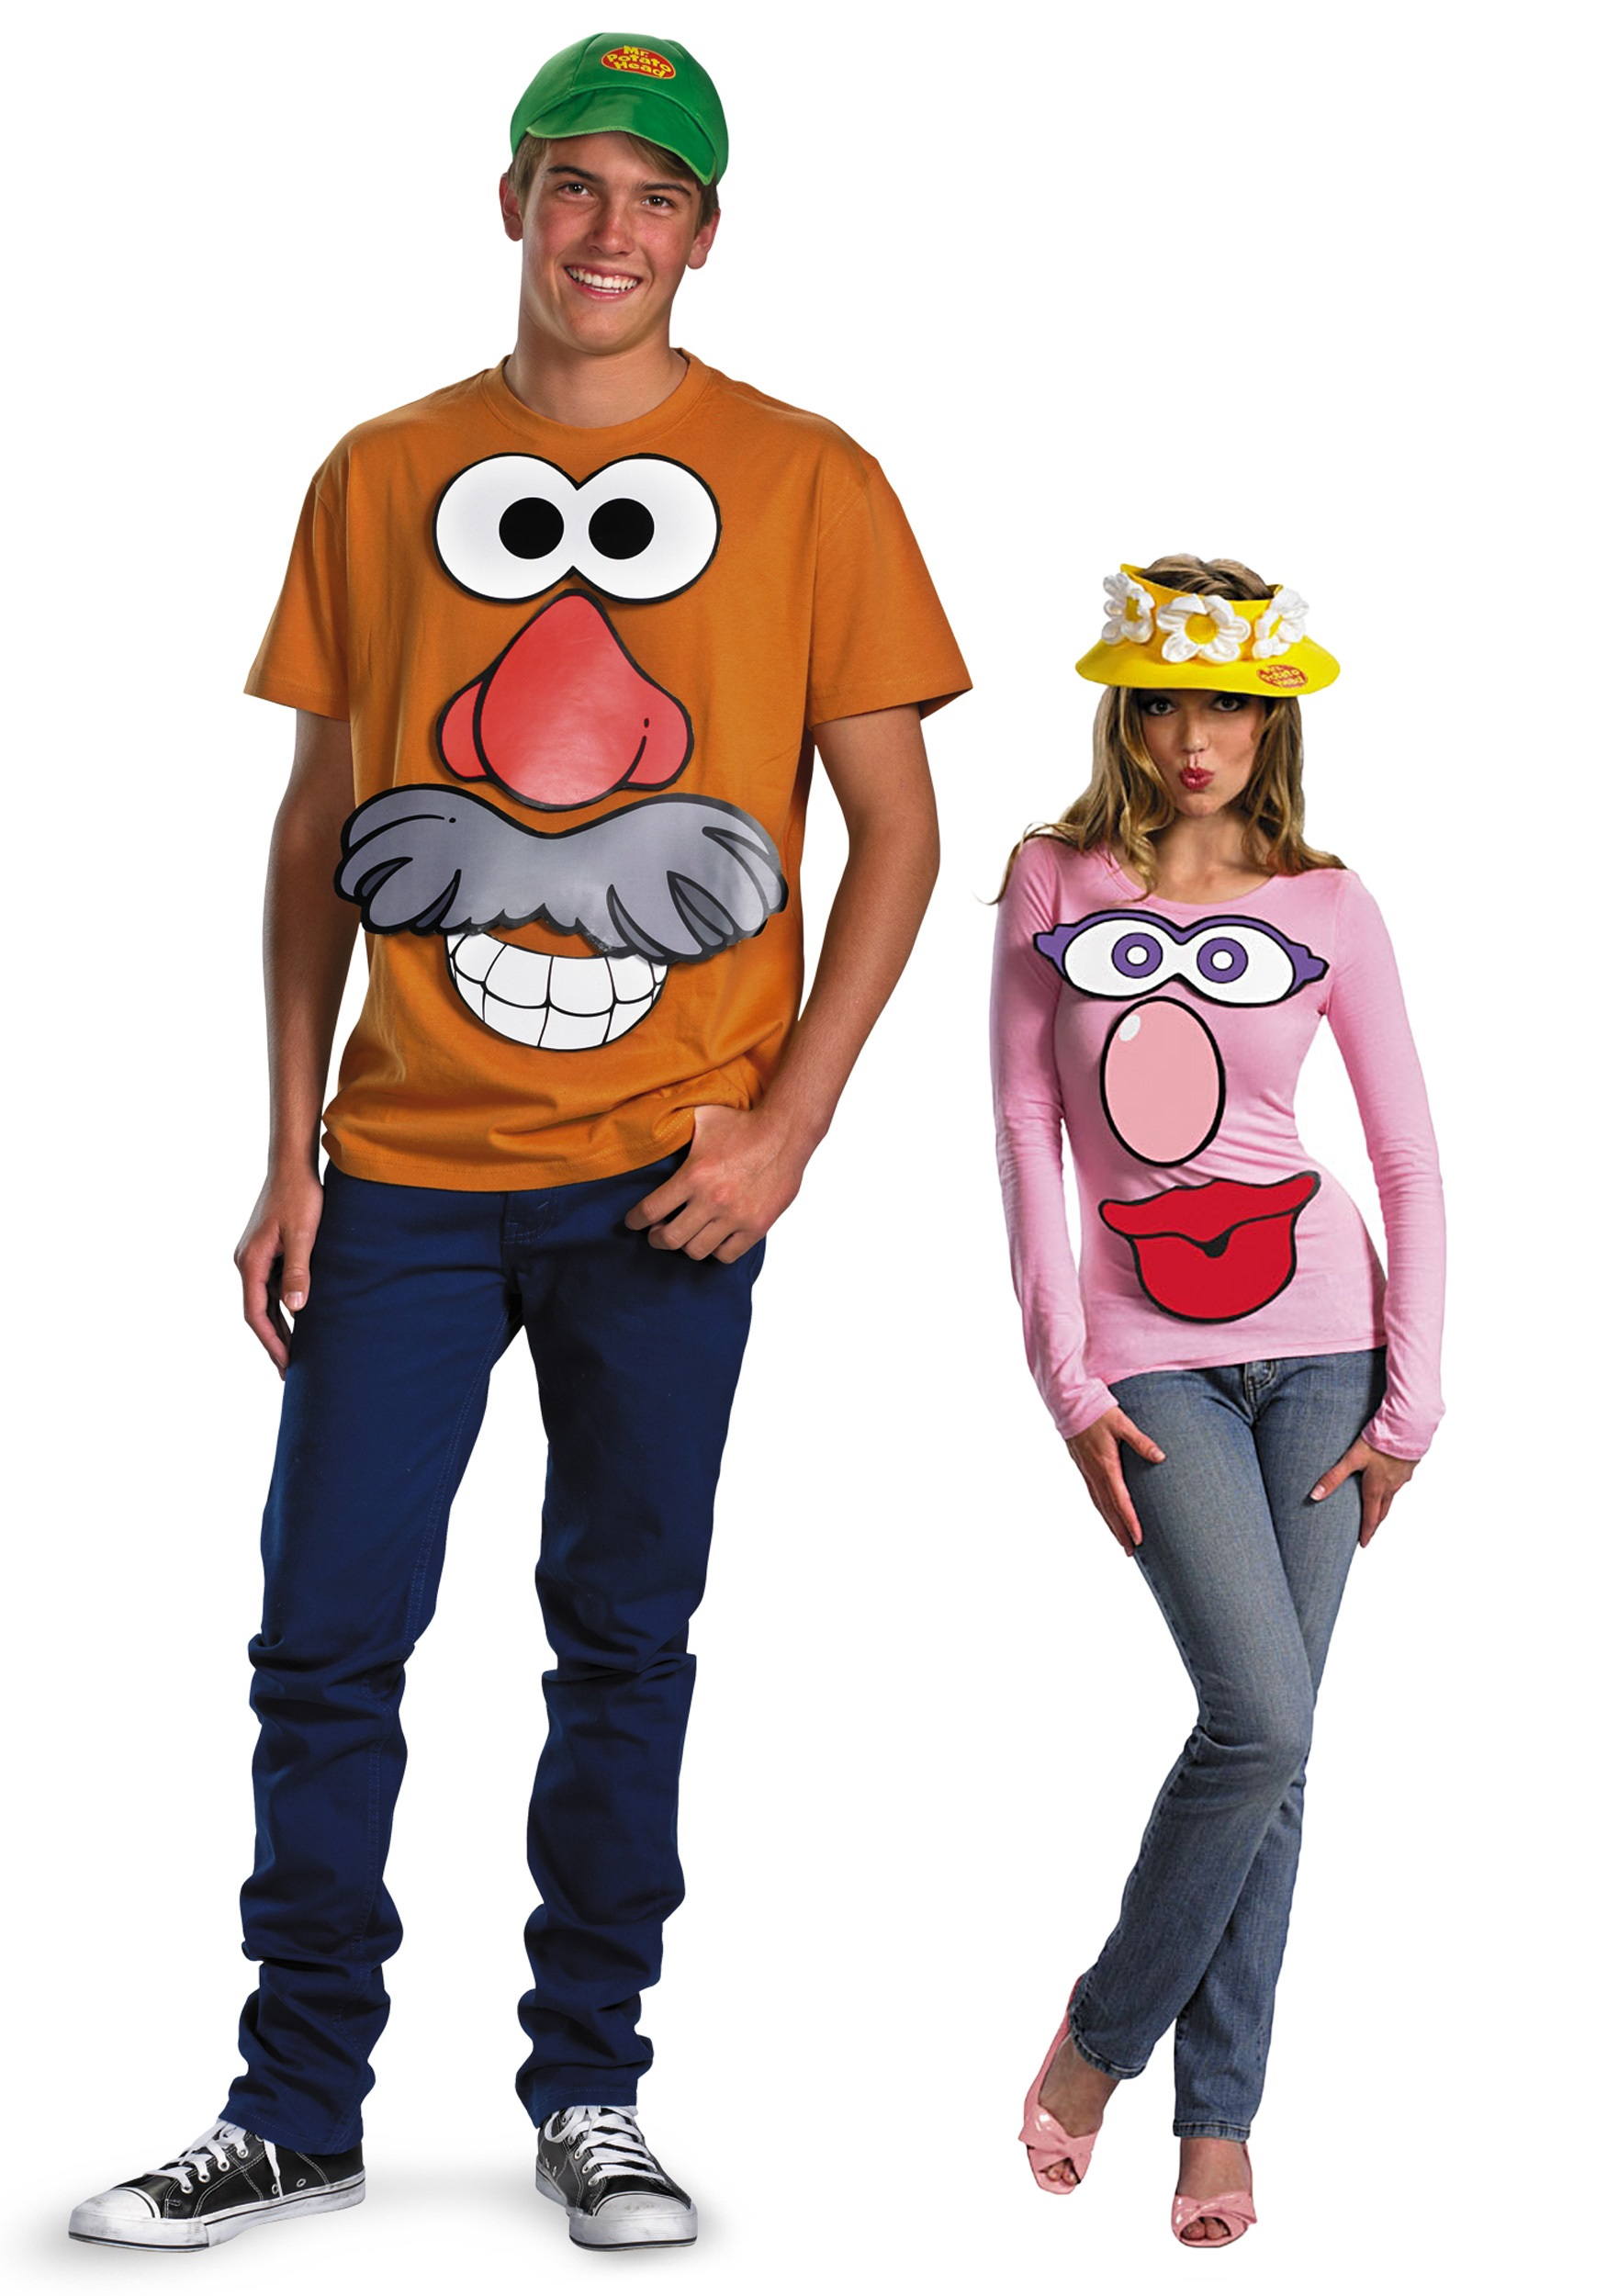 disney costumes funny costumes halloween accessories mens costumes potato head costumes theme costumes toy story costumes tv movie costumes